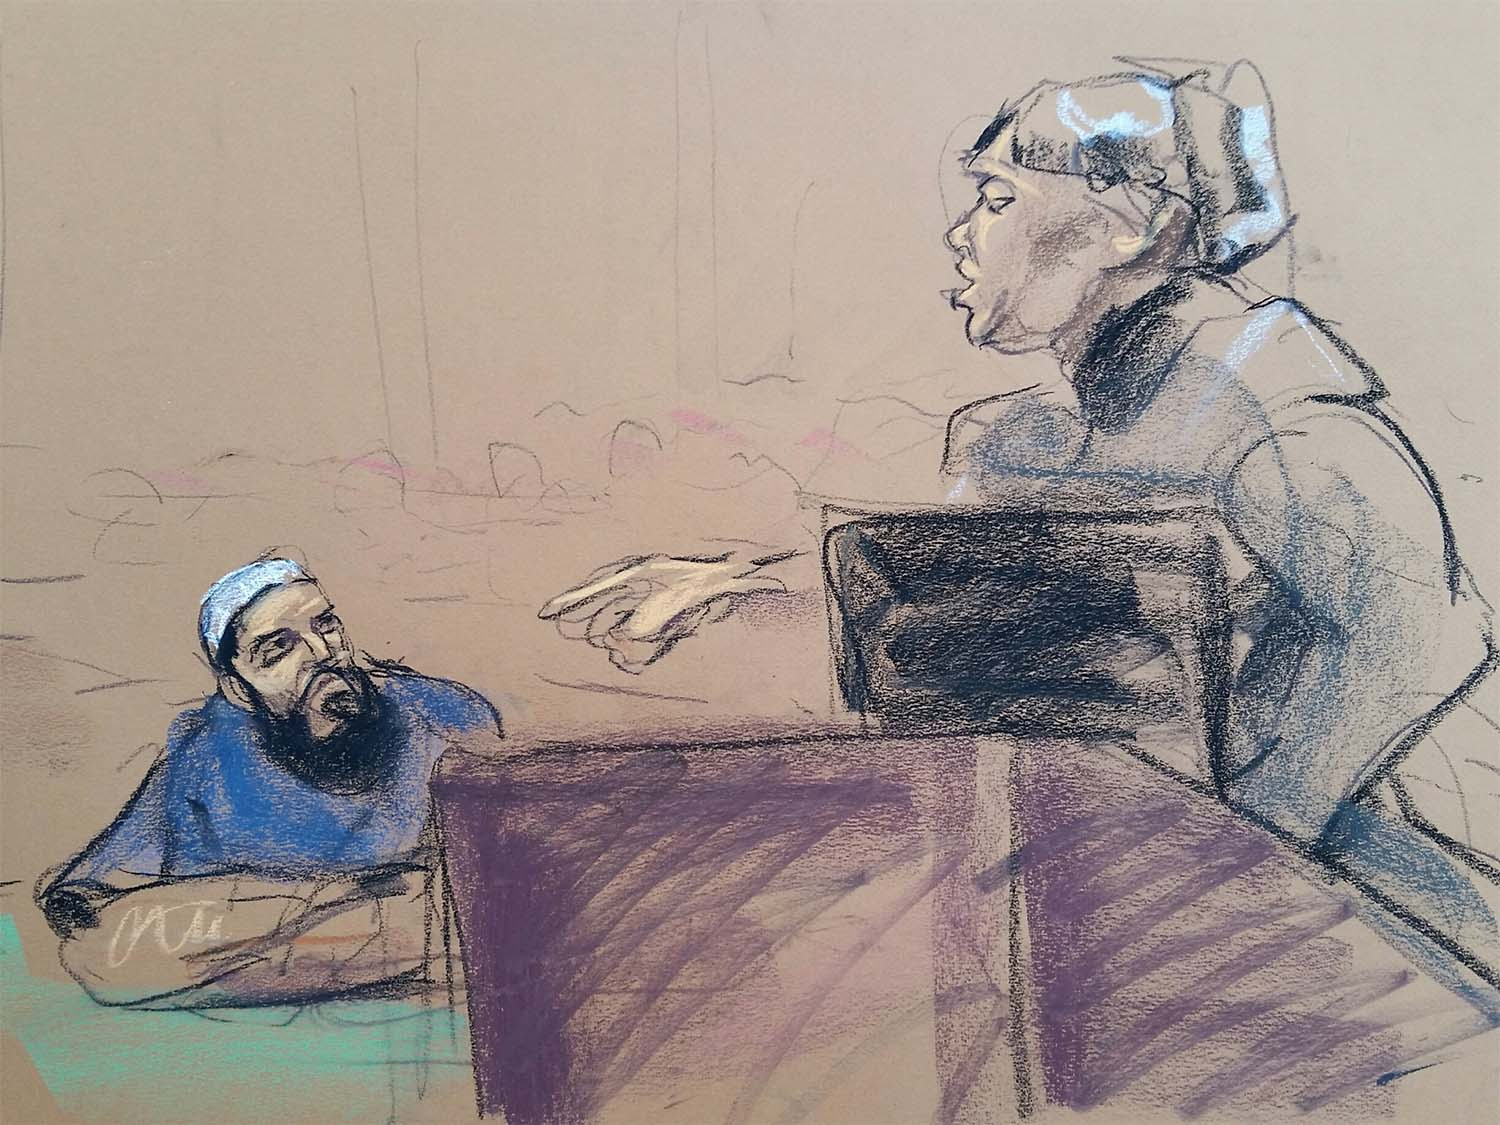 'Chelsea Bomber' Receives Two Life Sentences